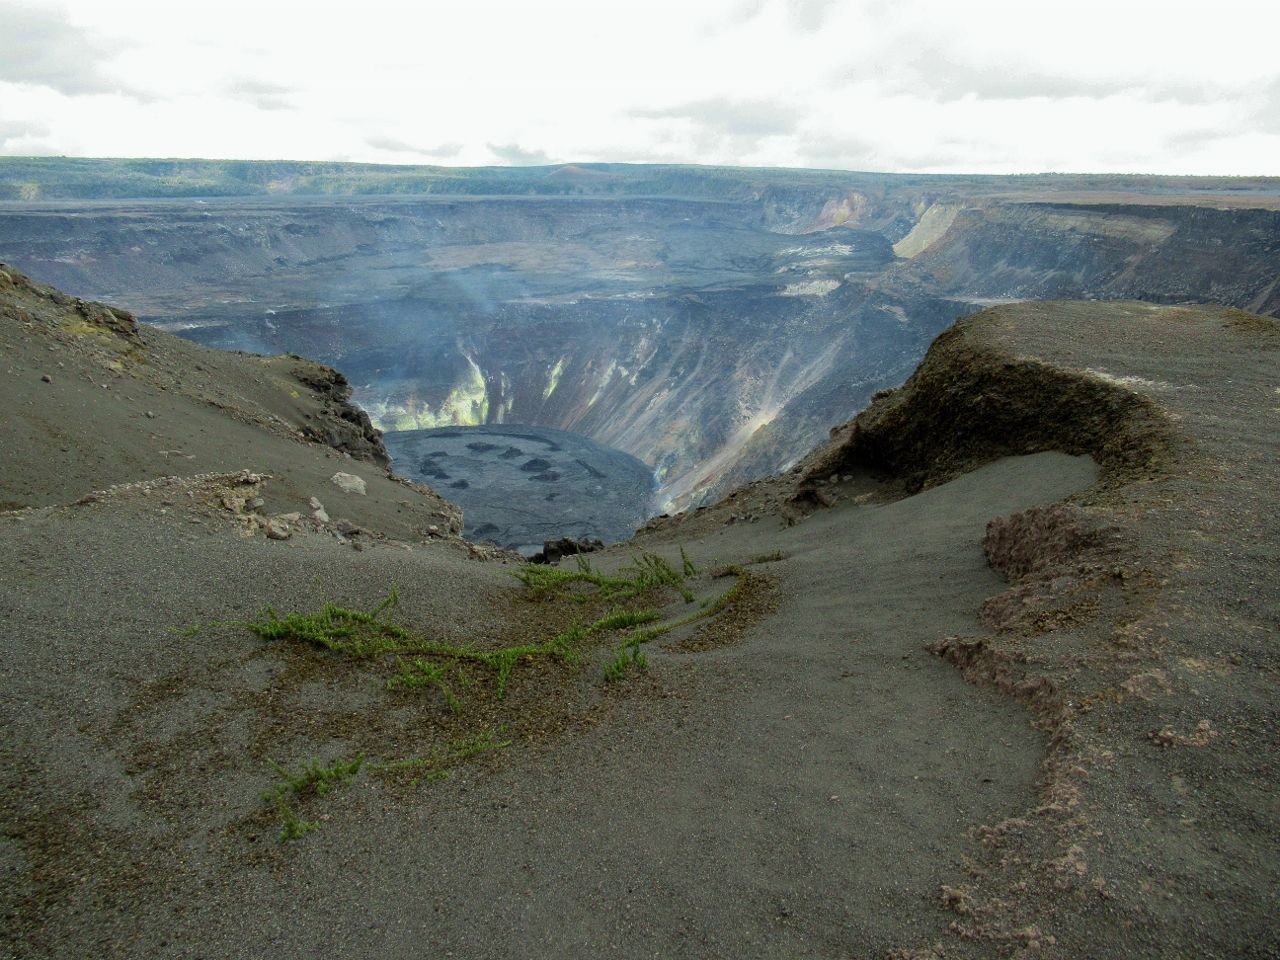 Bluish gas is visible over the lava lake of Halema'uma'u Crater in this image taken from the southwest rim on June 25, 2021 at 12:37 p.m. HST. Although the eruptive activity has paused at the summit of Kīlauea, gases rich in sulfur dioxide can still be seen emanating from the lava lake, mainly along the northern margin, but also at the western vent and along the southern margin. - USGS photo taken by J.M. Chang.